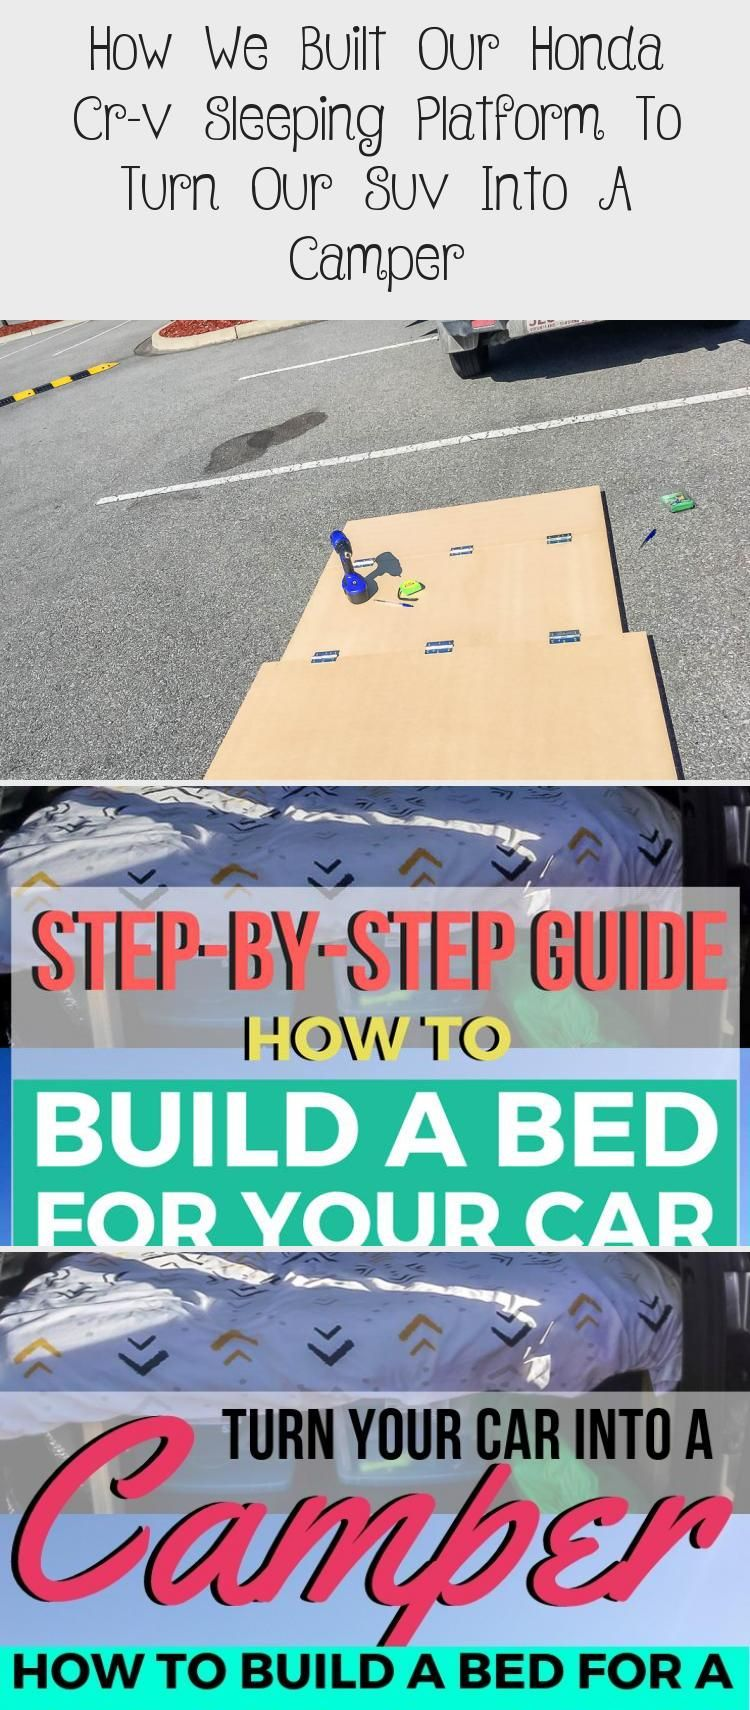 How we built our Honda CR-V sleeping platform and why you should turn your car into a camper – Es